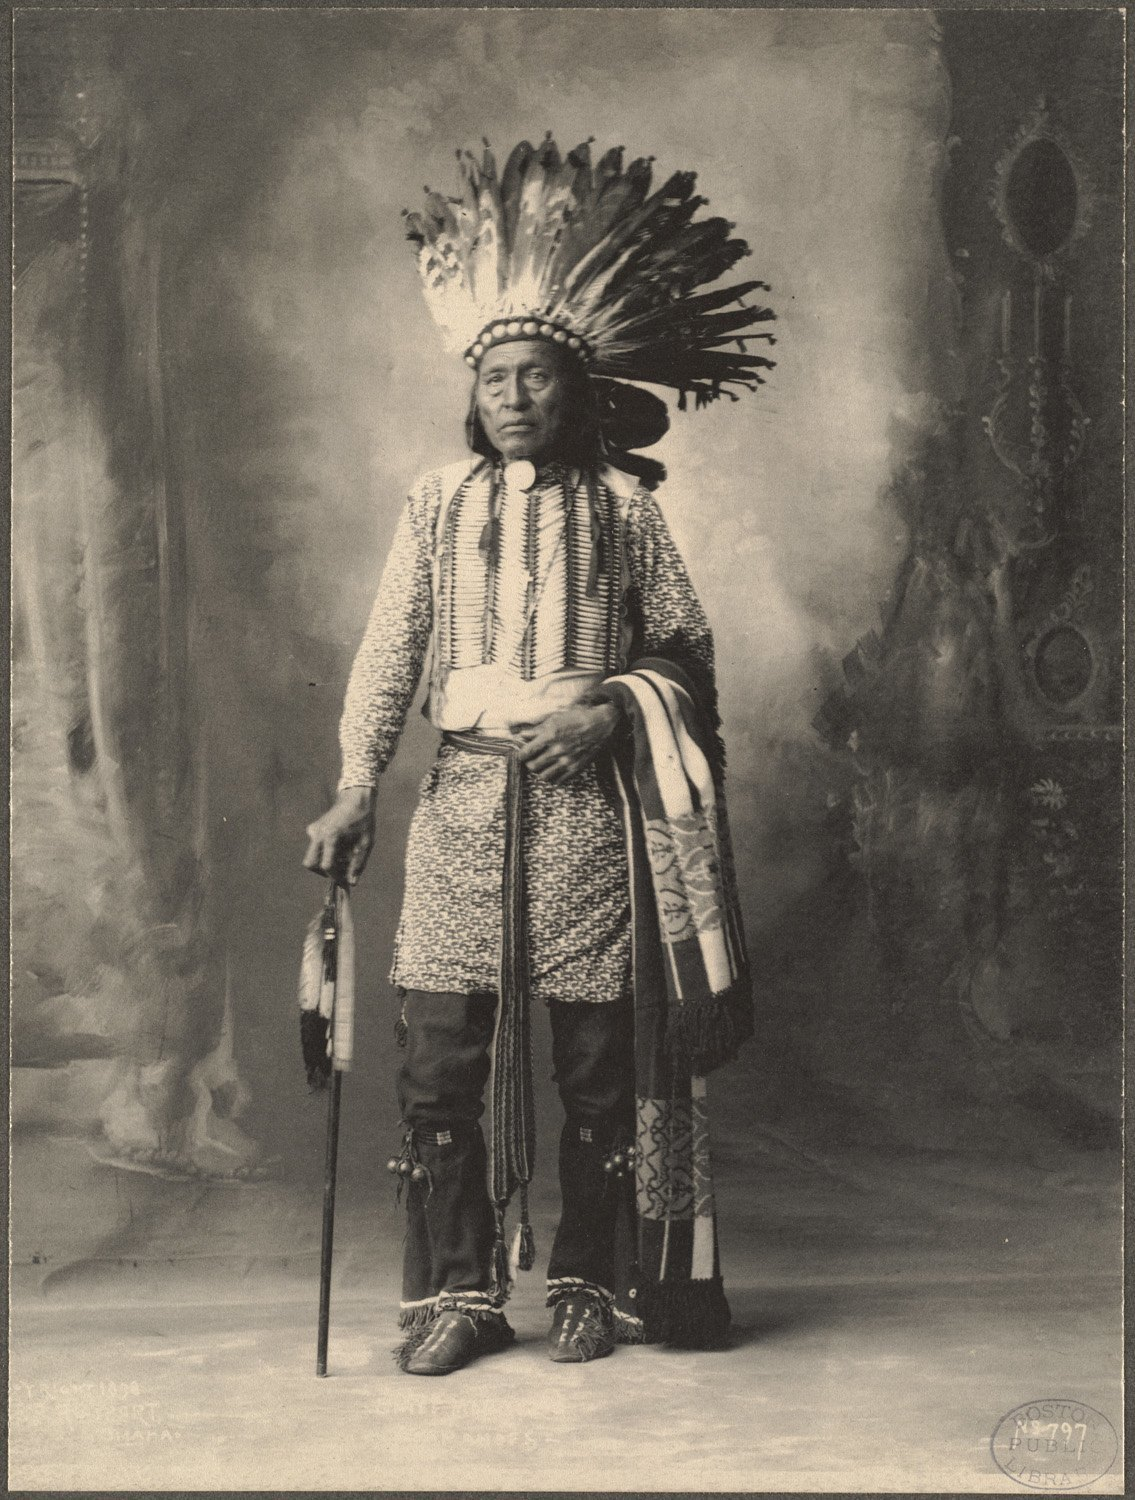 Arapahoe Chief, 1899. (Photo by Frank A. Rinehart)